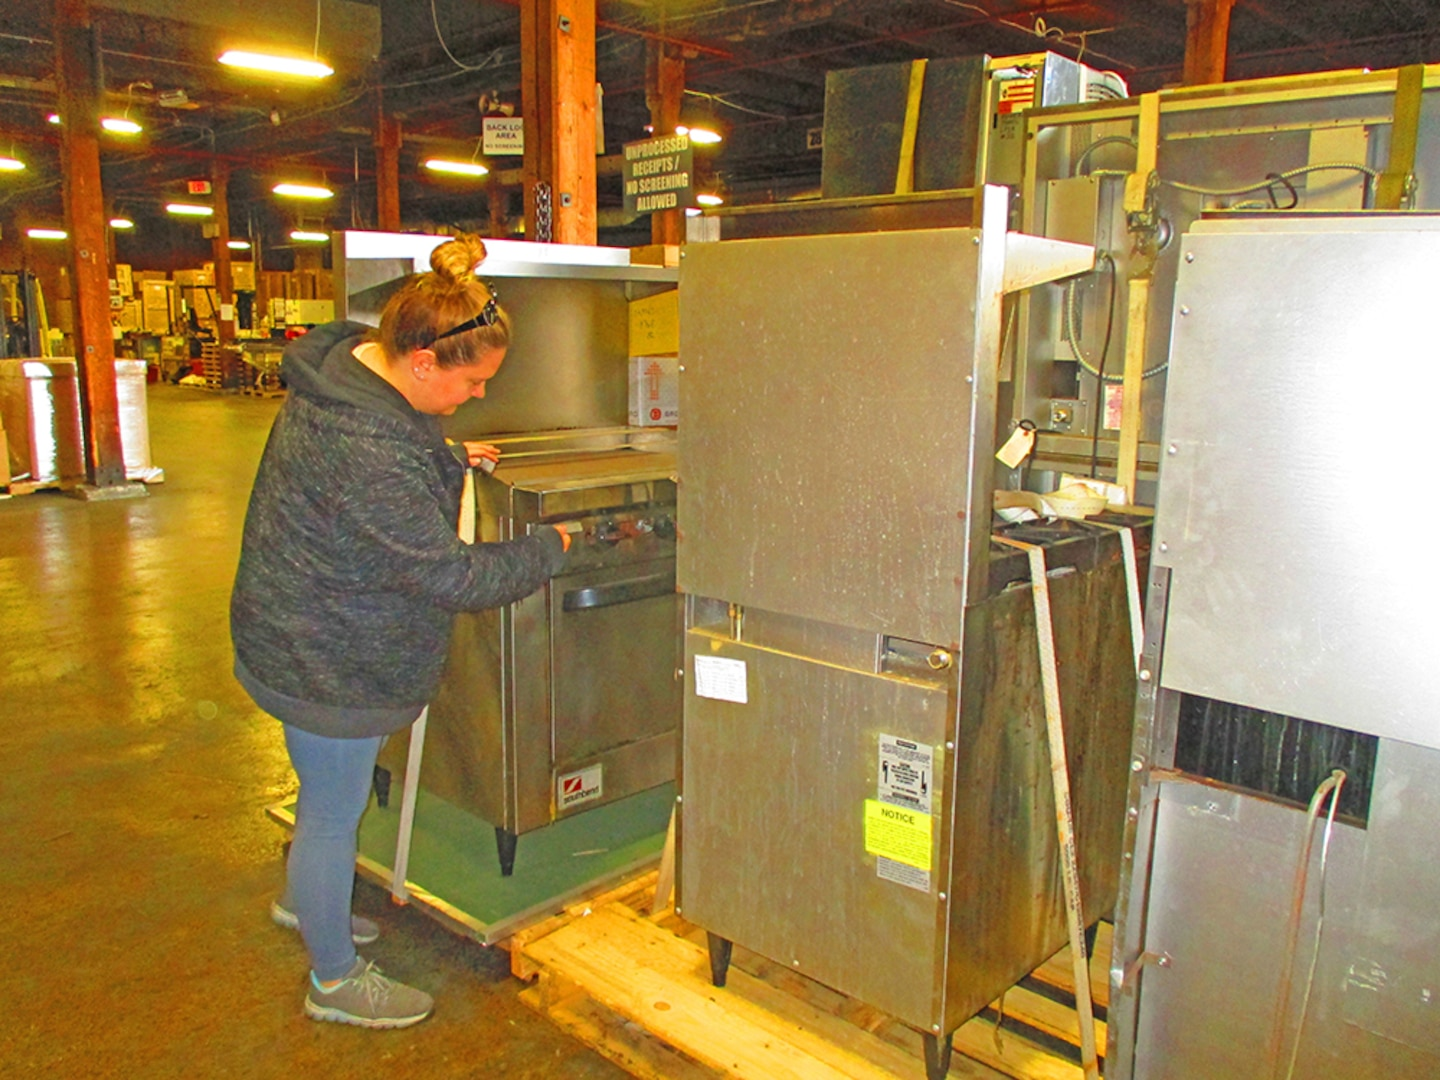 A warehouse worker prepares kitchen equipment for movement.